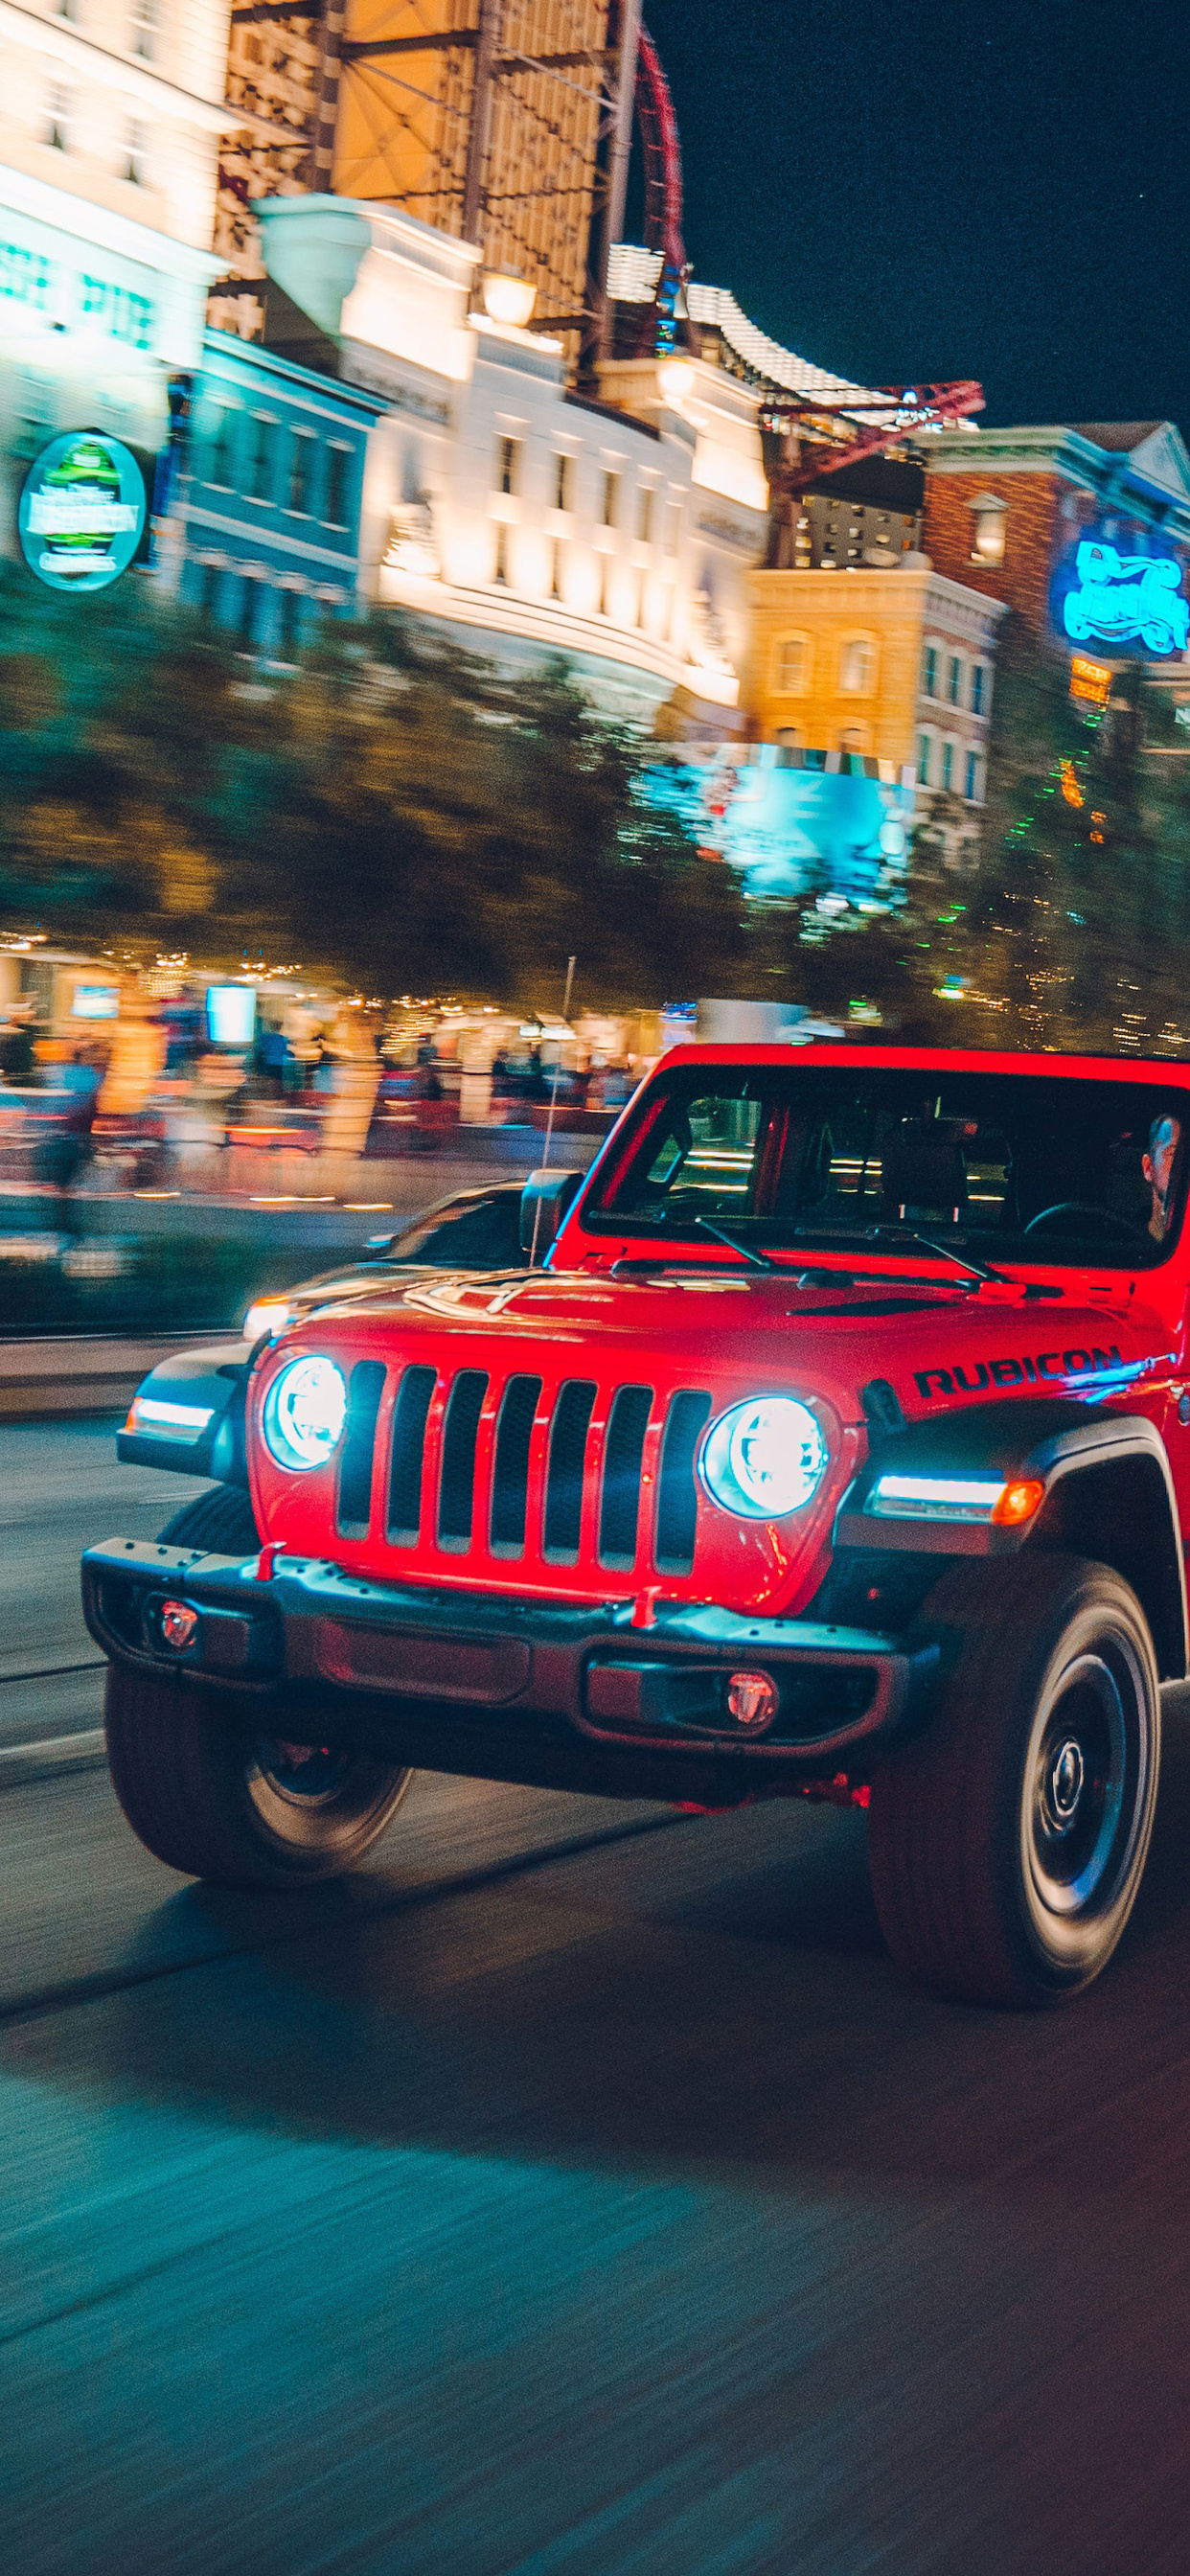 1242x2688 Jeep Wrangler Iphone Xs Max Hd 4k Wallpapers